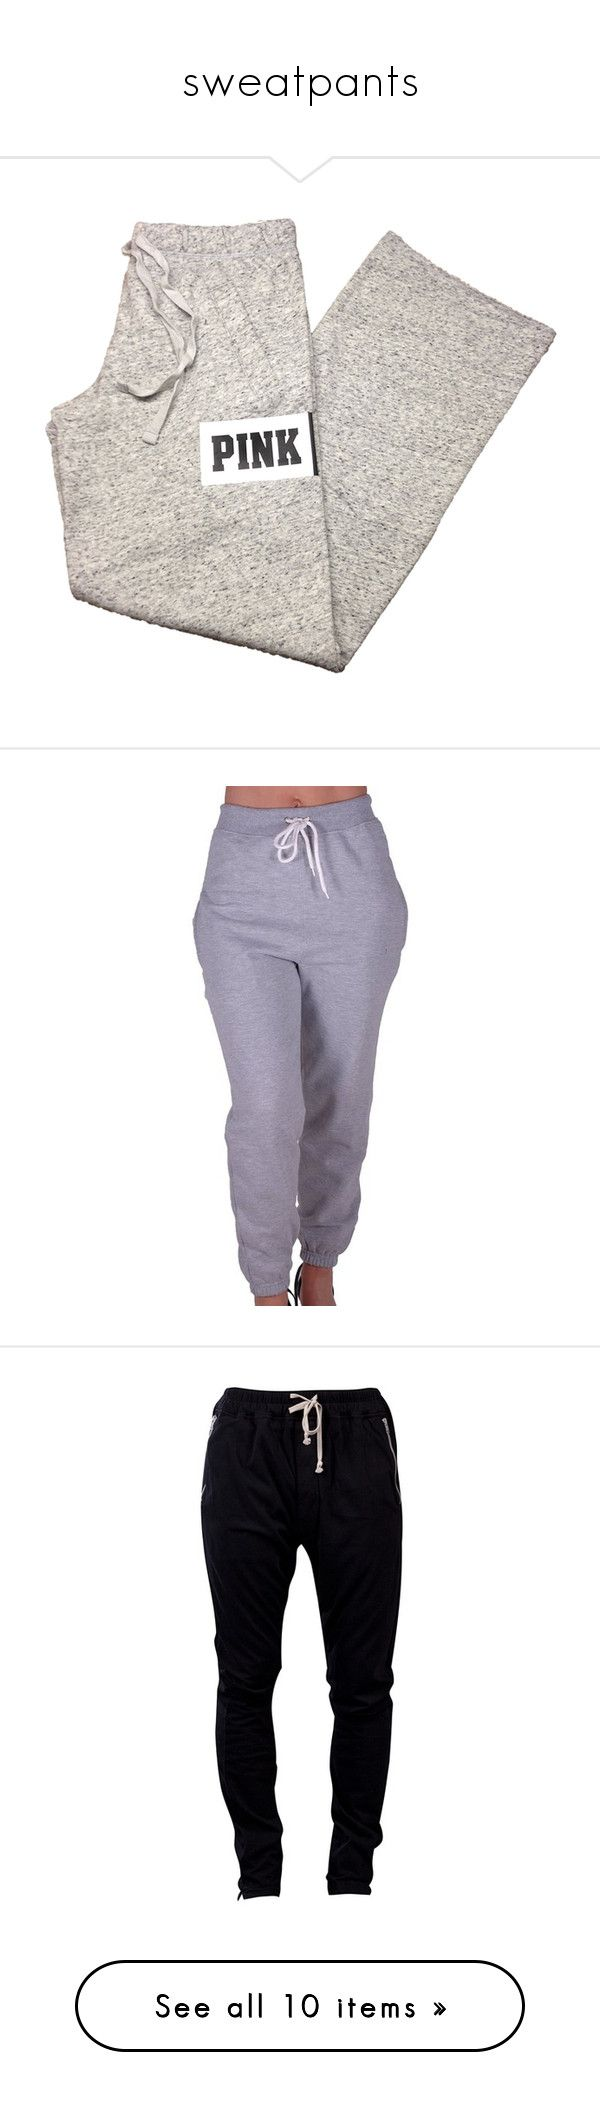 """sweatpants"" by ksmithh ❤ liked on Polyvore featuring men's fashion, men's clothing, men's activewear, men's activewear pants, pants, activewear, activewear pants, sweatpants, boyfriend sweatpants and sweat pants"